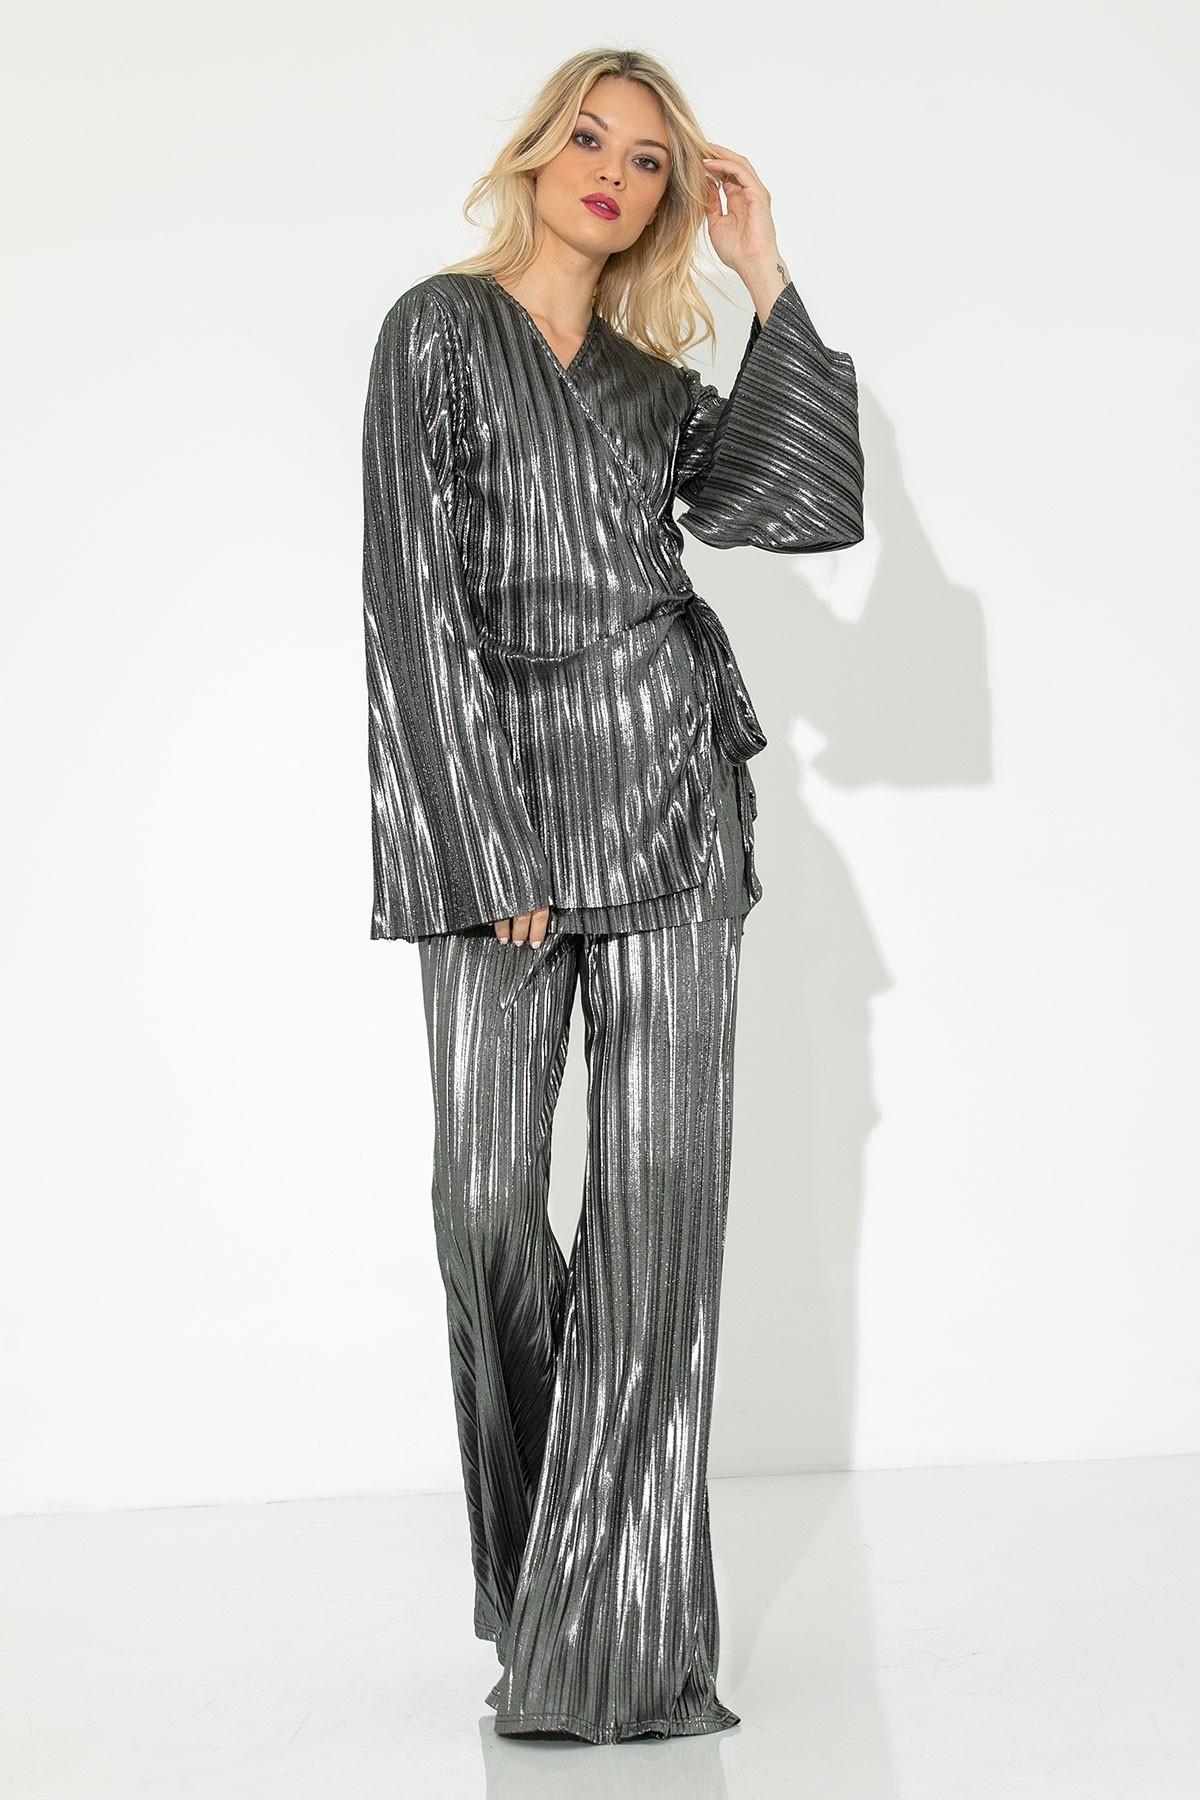 SILVER METALLIC PLEATED WIDE LEG TROUSERS